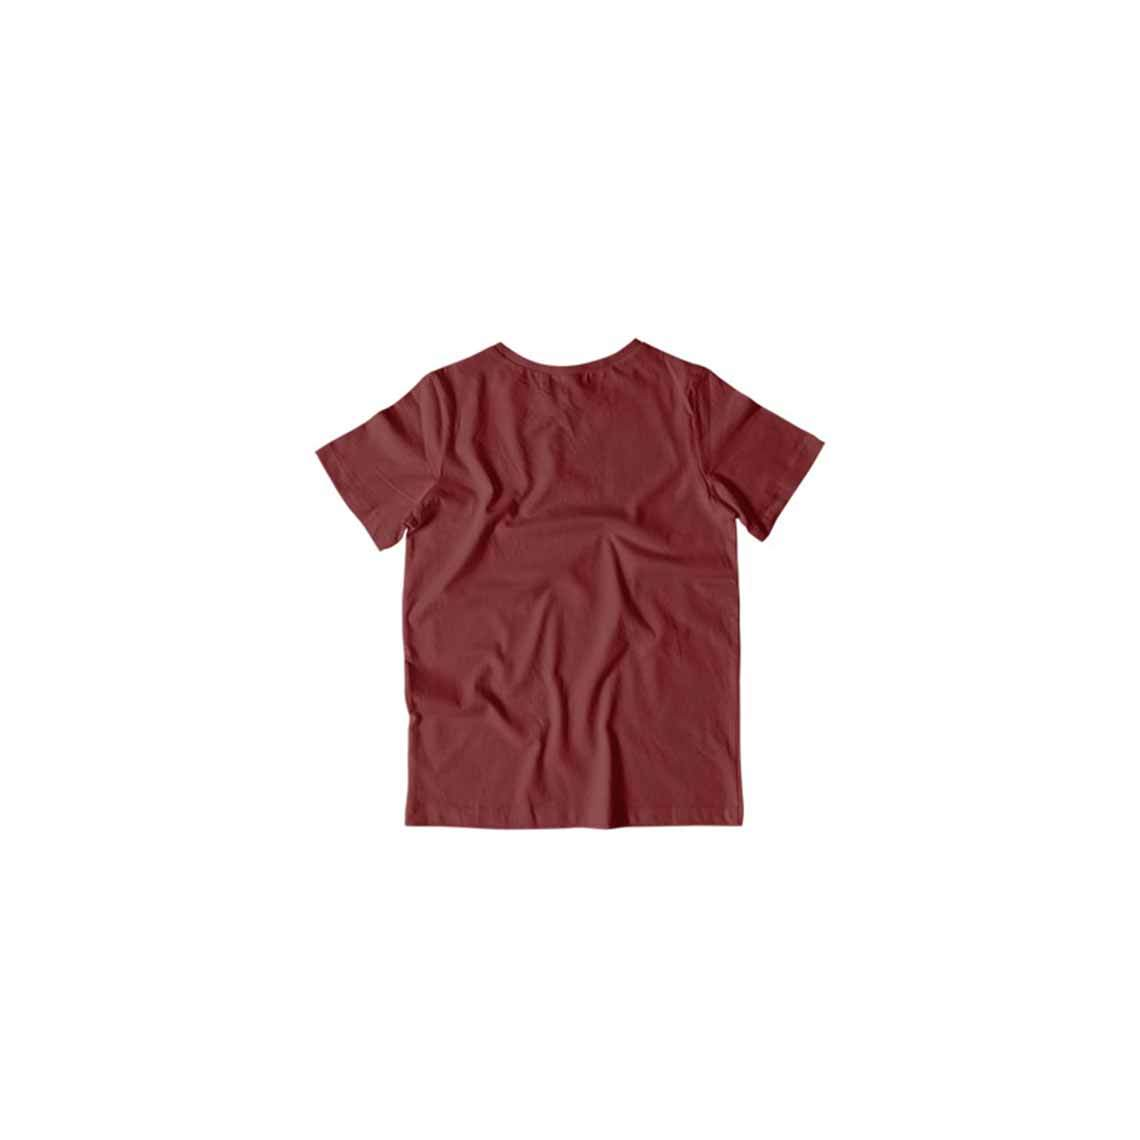 Toddler's Basics - Maroon Half Sleeves Round Neck T-shirt